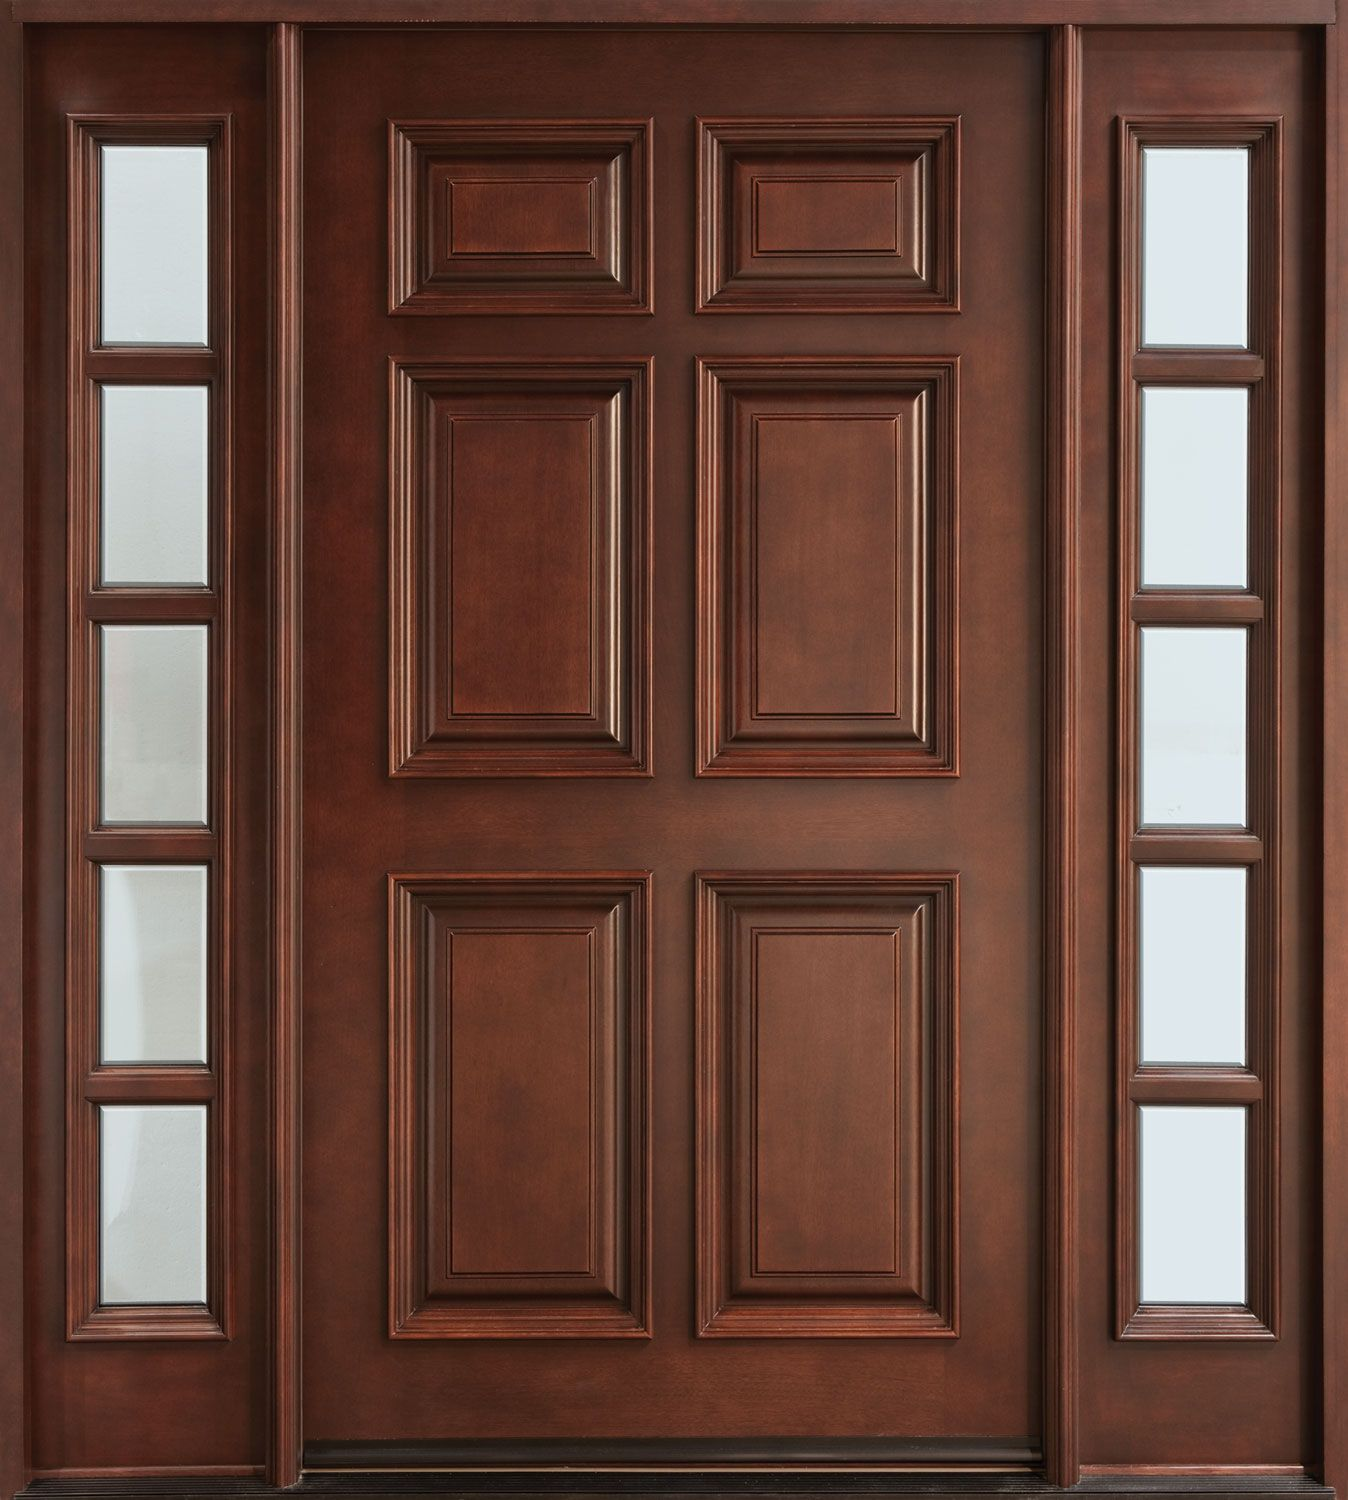 wood doors simpson door has built handcrafted solid wood doors since 1912 masonite combines a long - Entrance Doors Designs